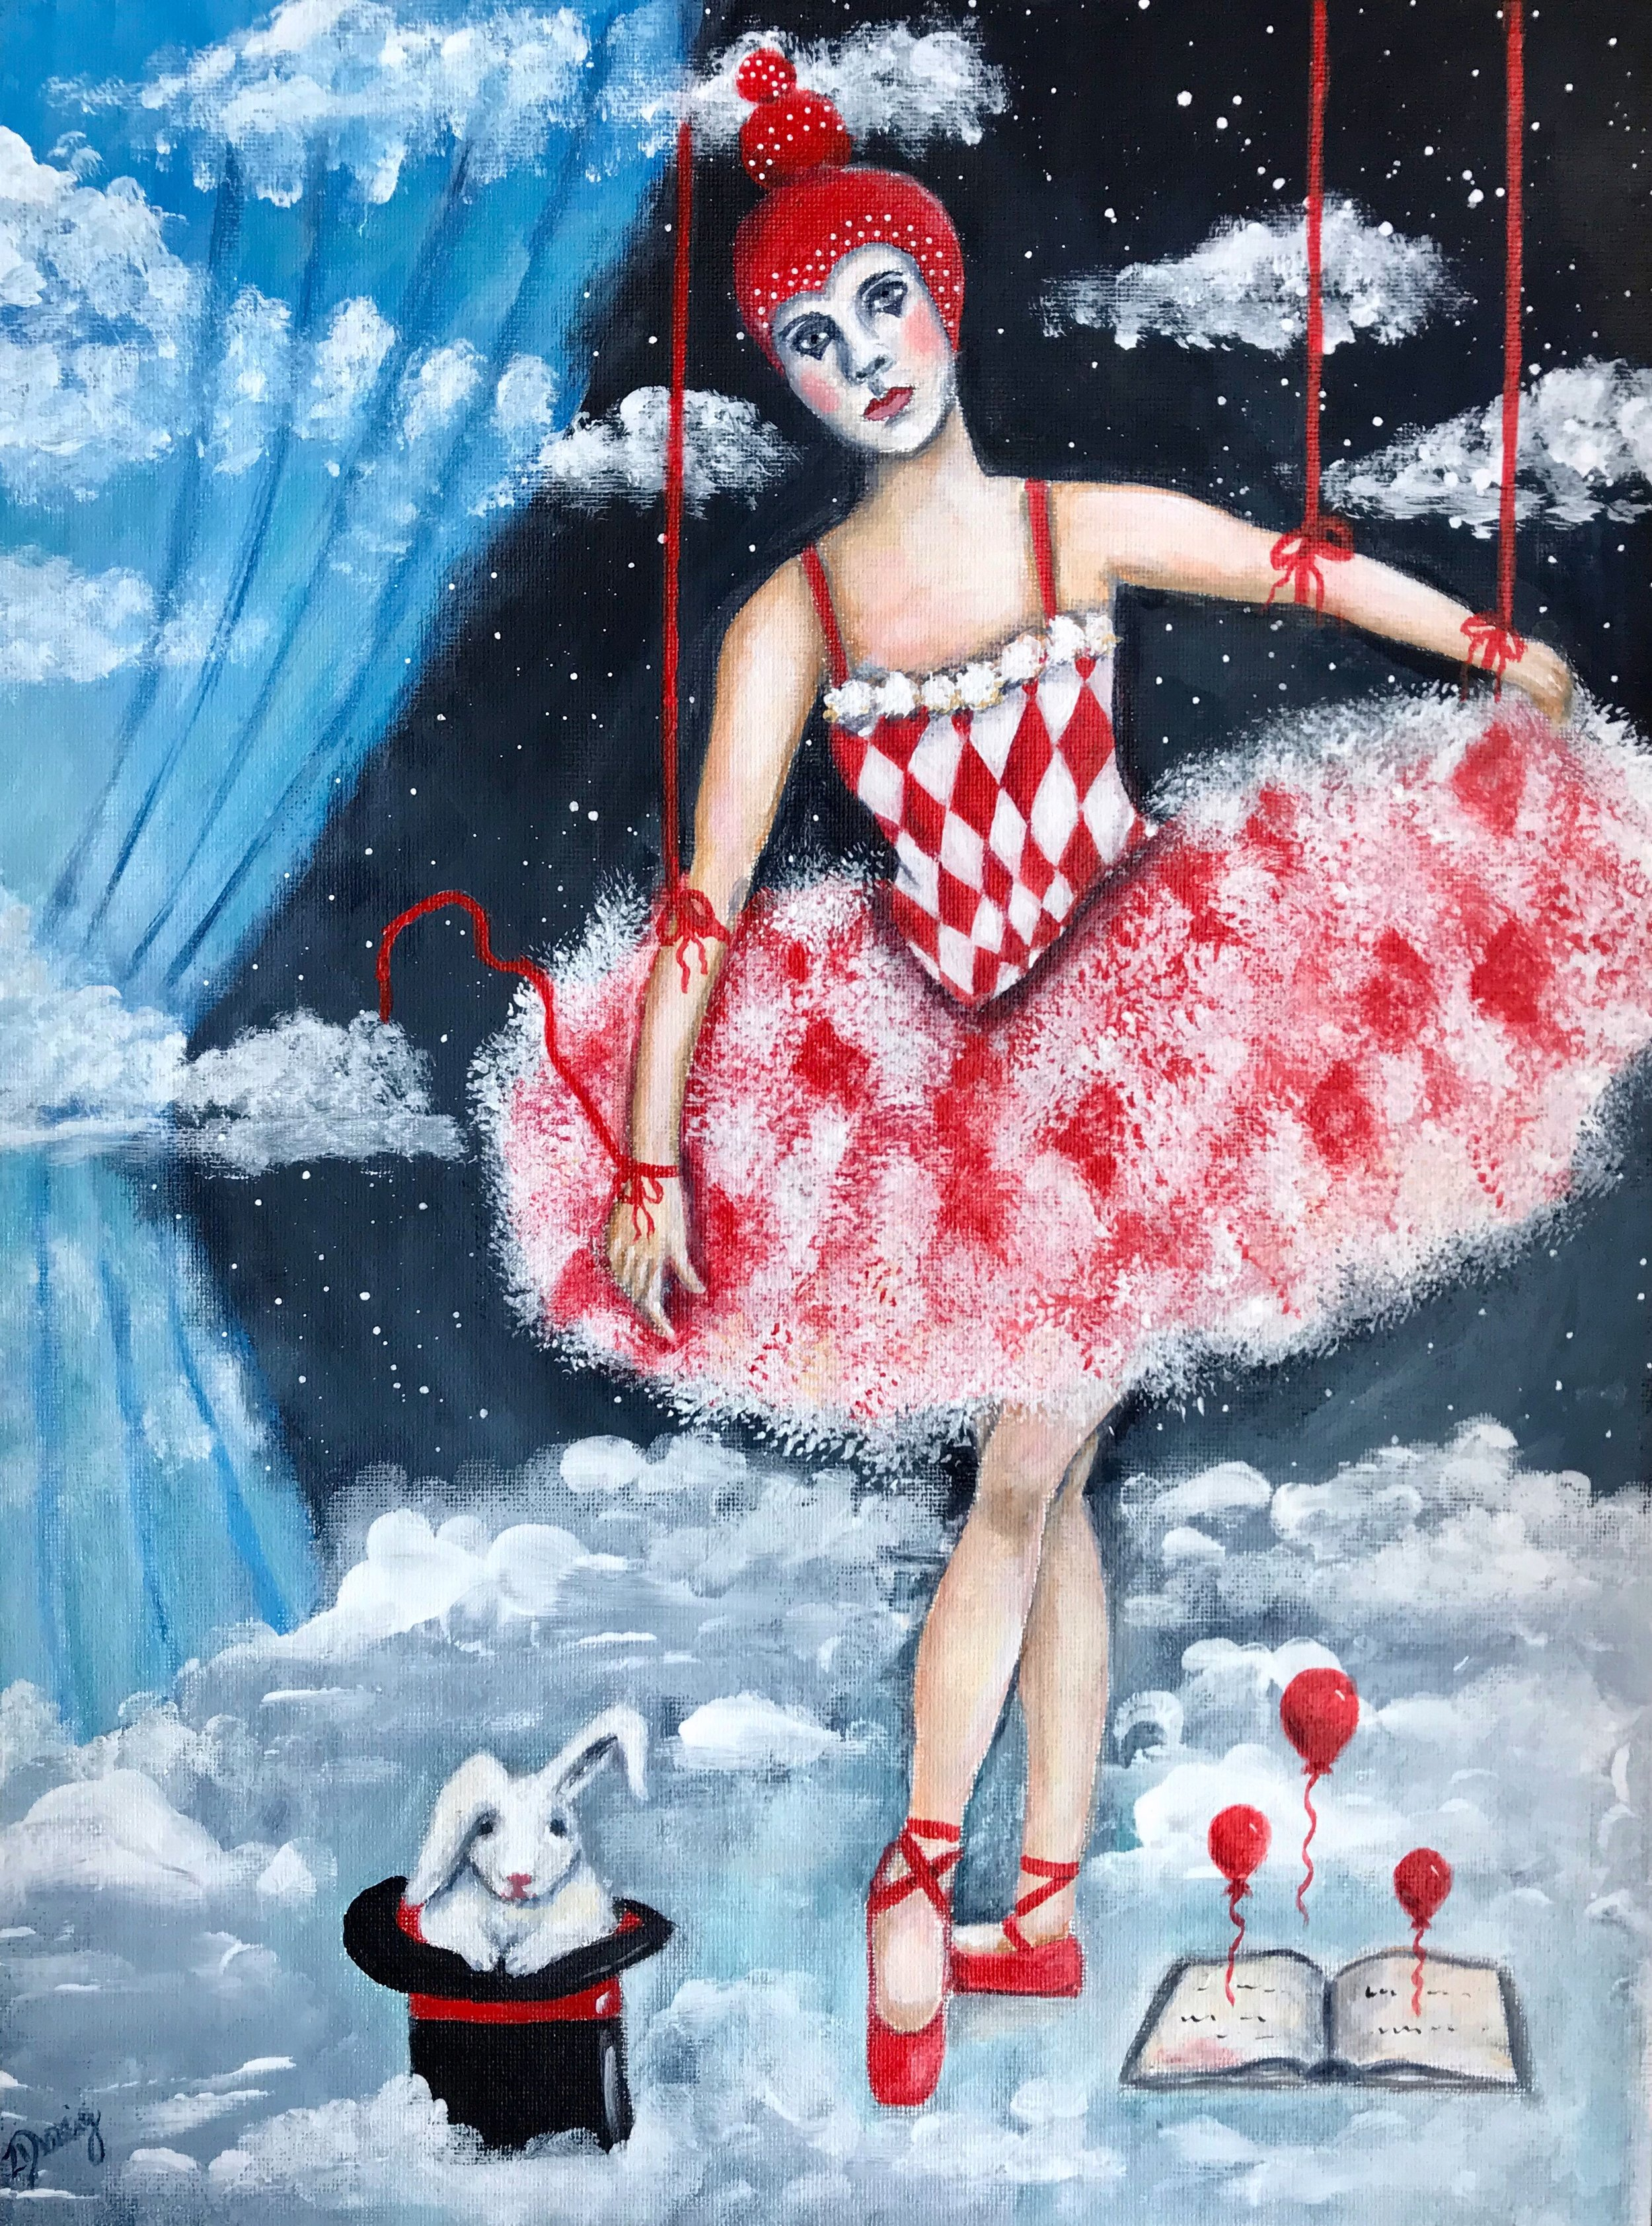 SOLD - The Puppeteer's Stage - Acrylics